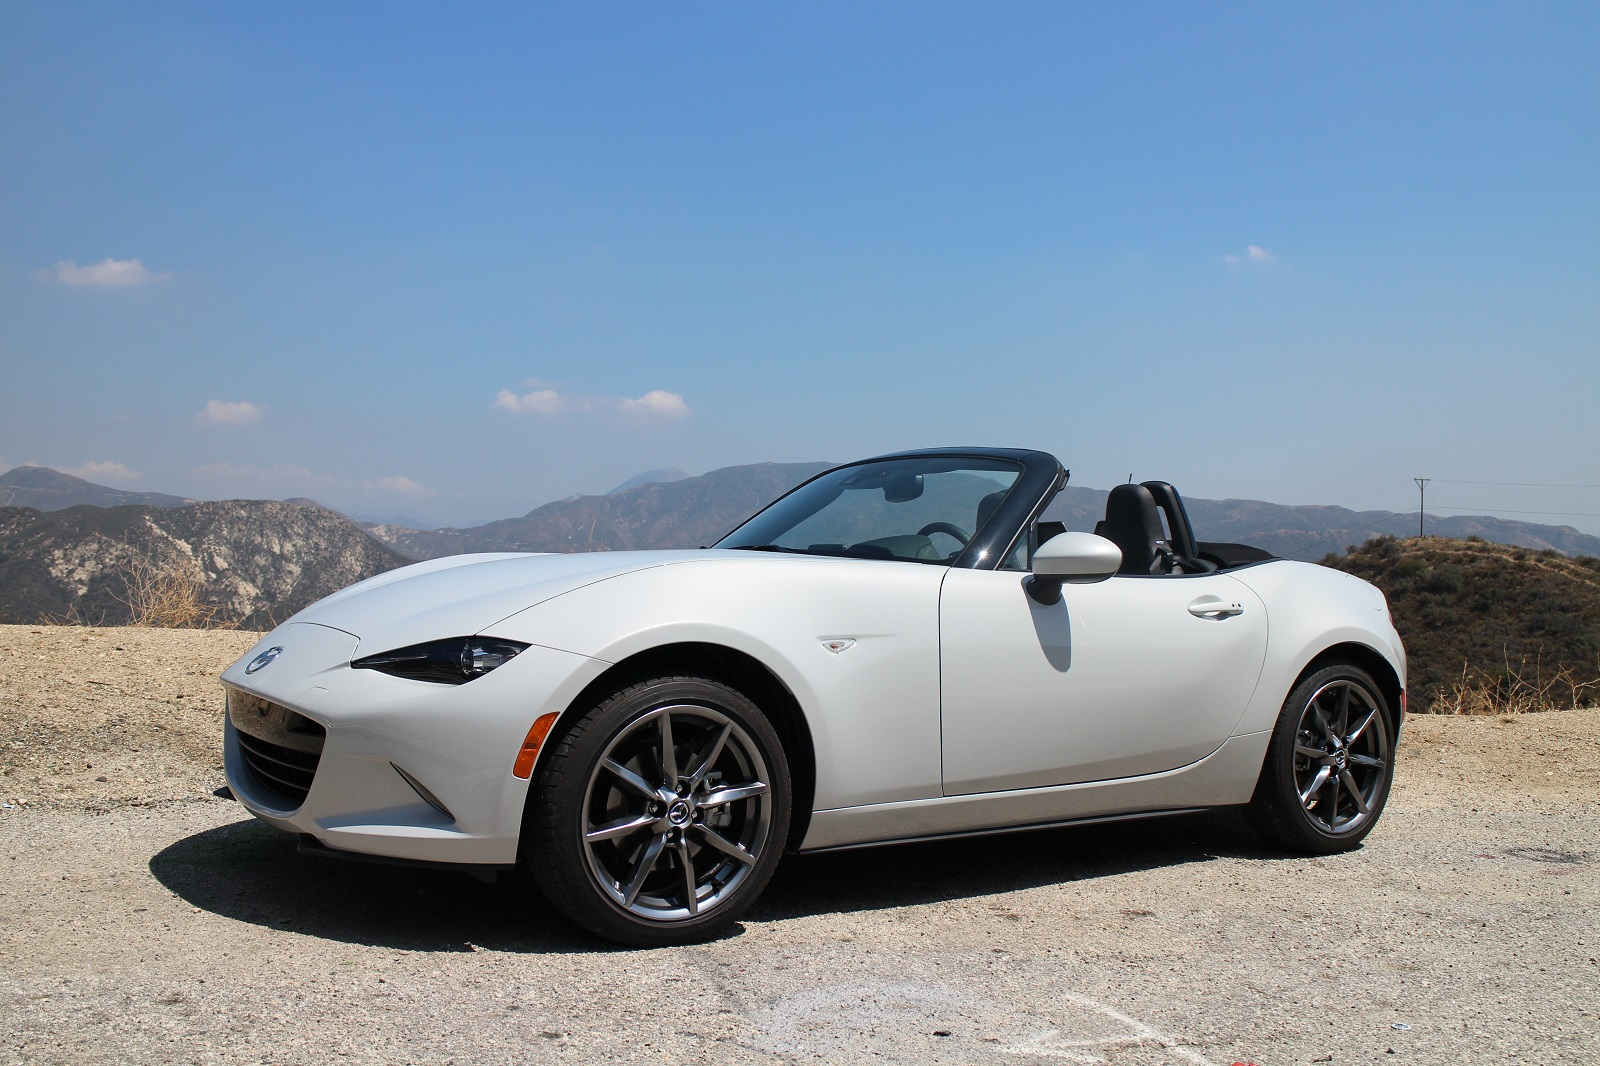 2016 mazda mx 5 miata the greenest new sports car you can buy. Black Bedroom Furniture Sets. Home Design Ideas